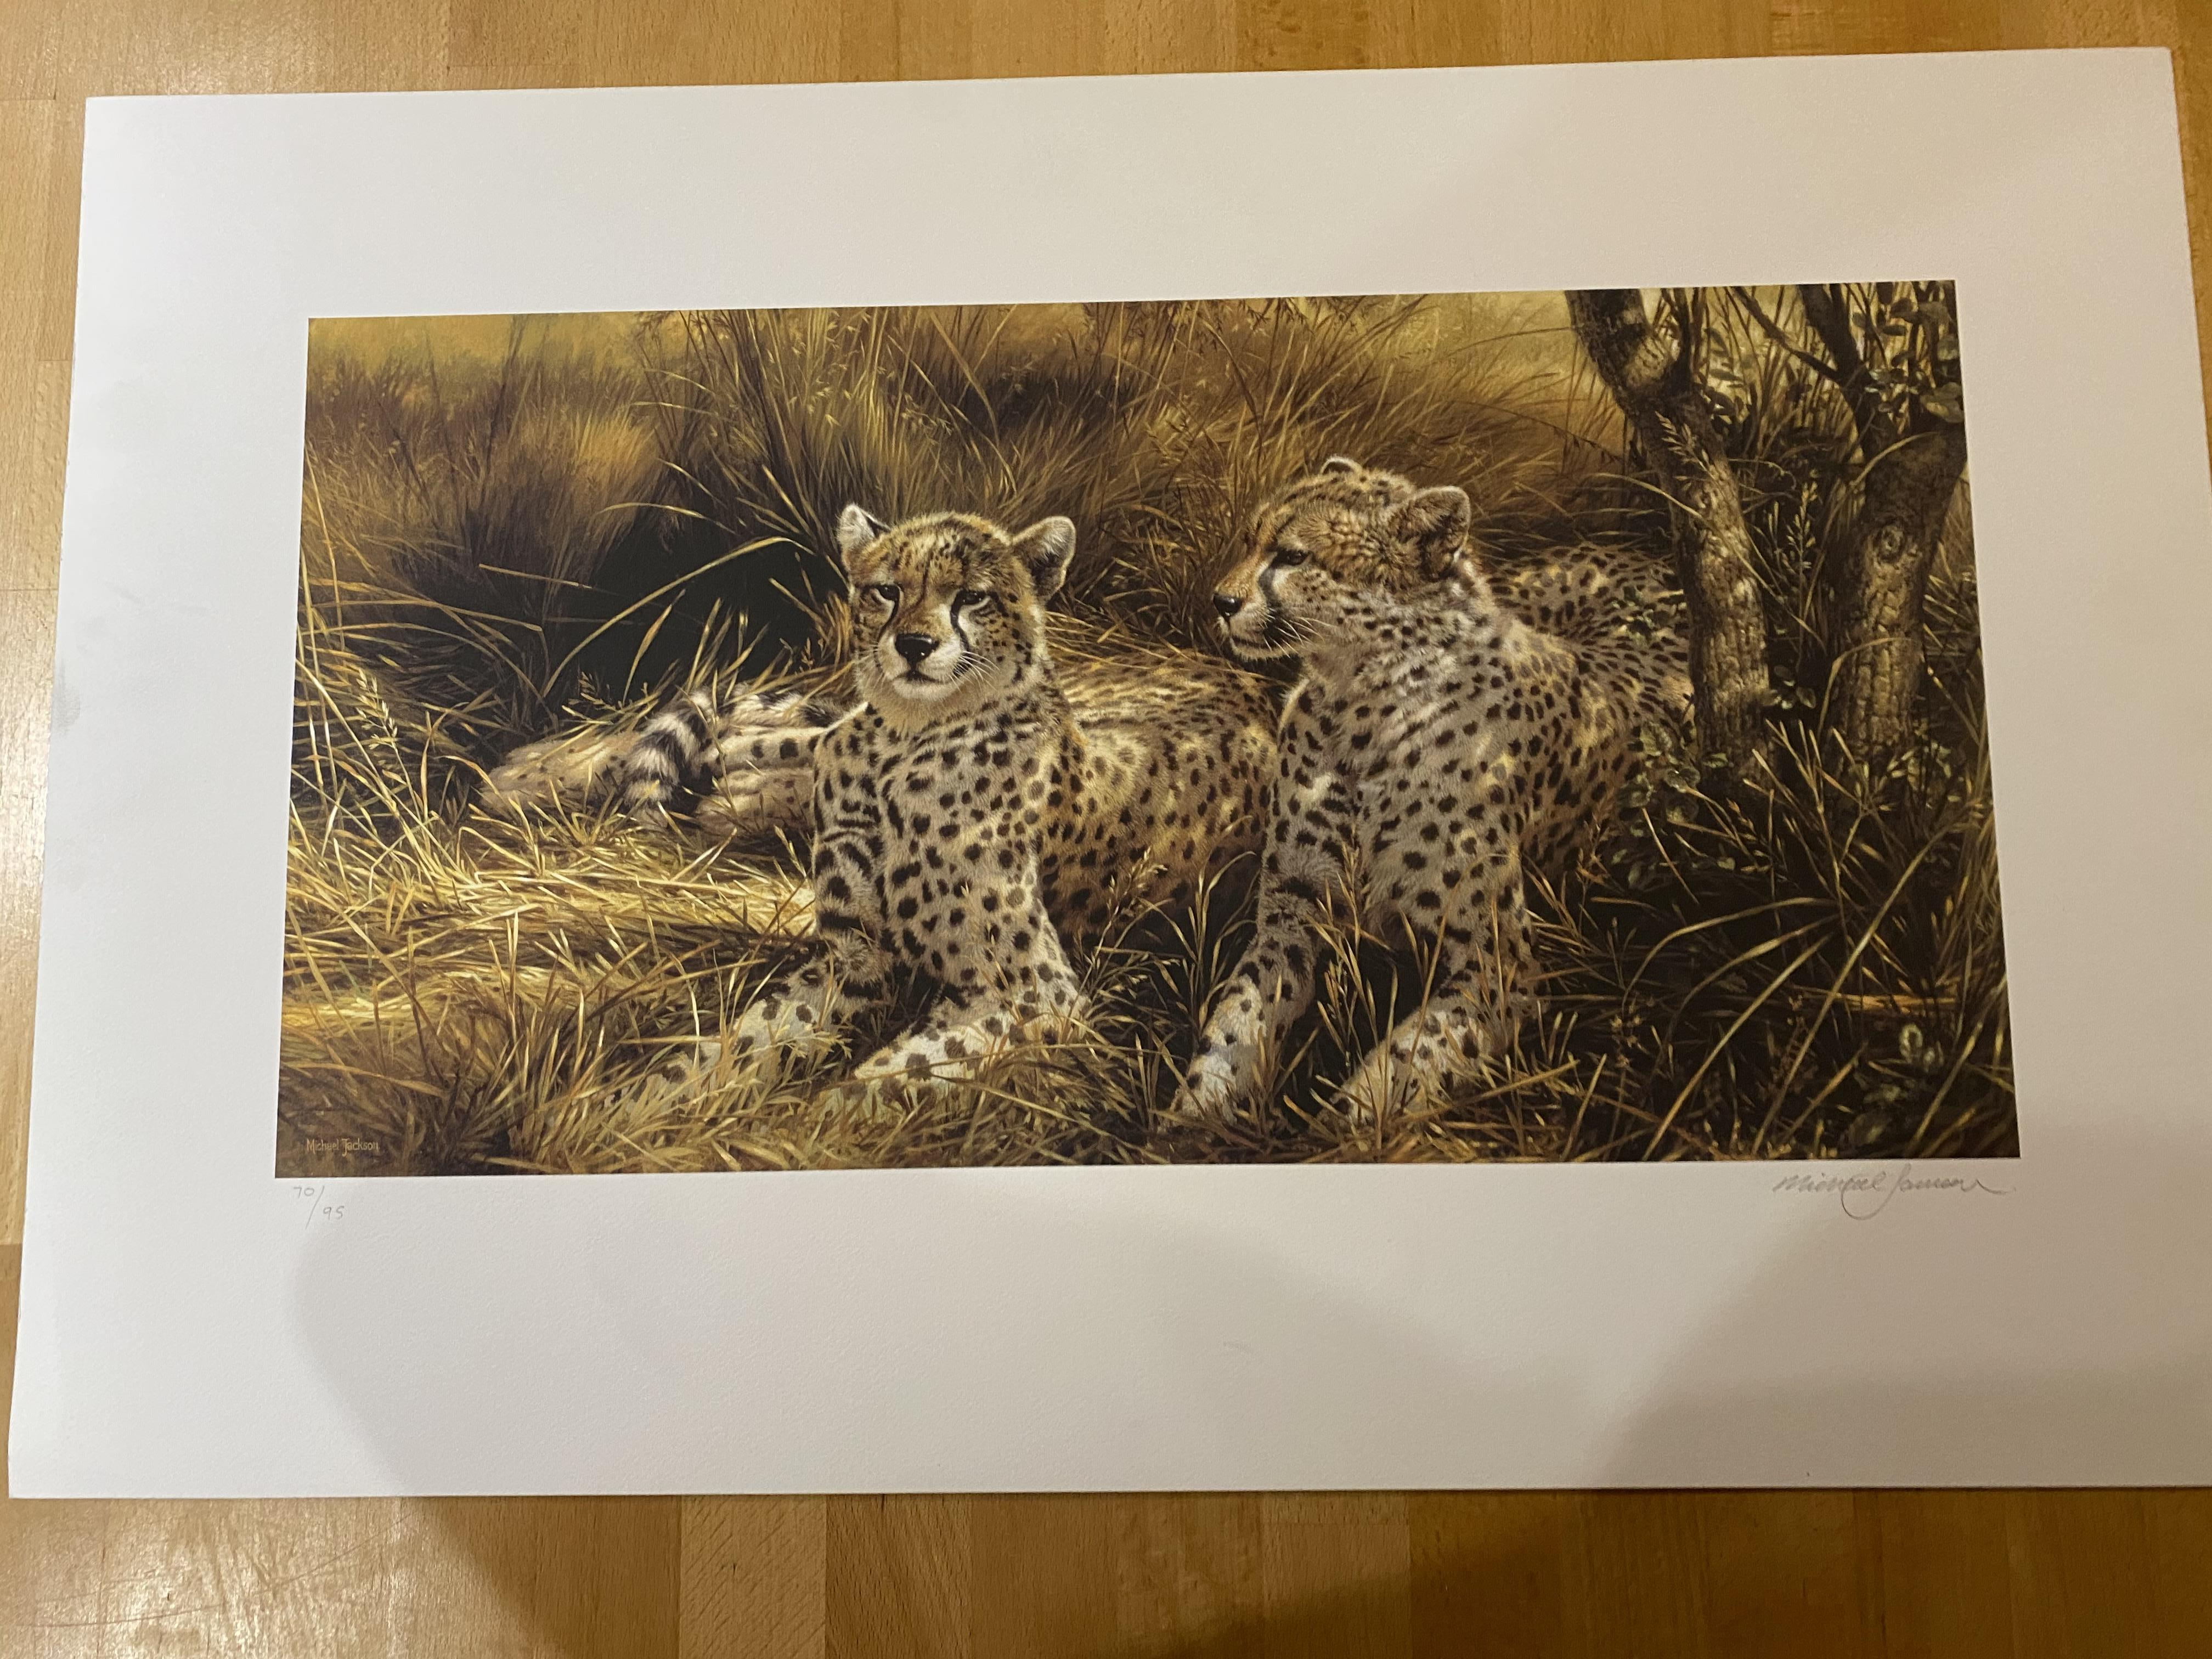 Michael Jackson Signed Limited Edition Print 'Cheetahs' With C.O.A.